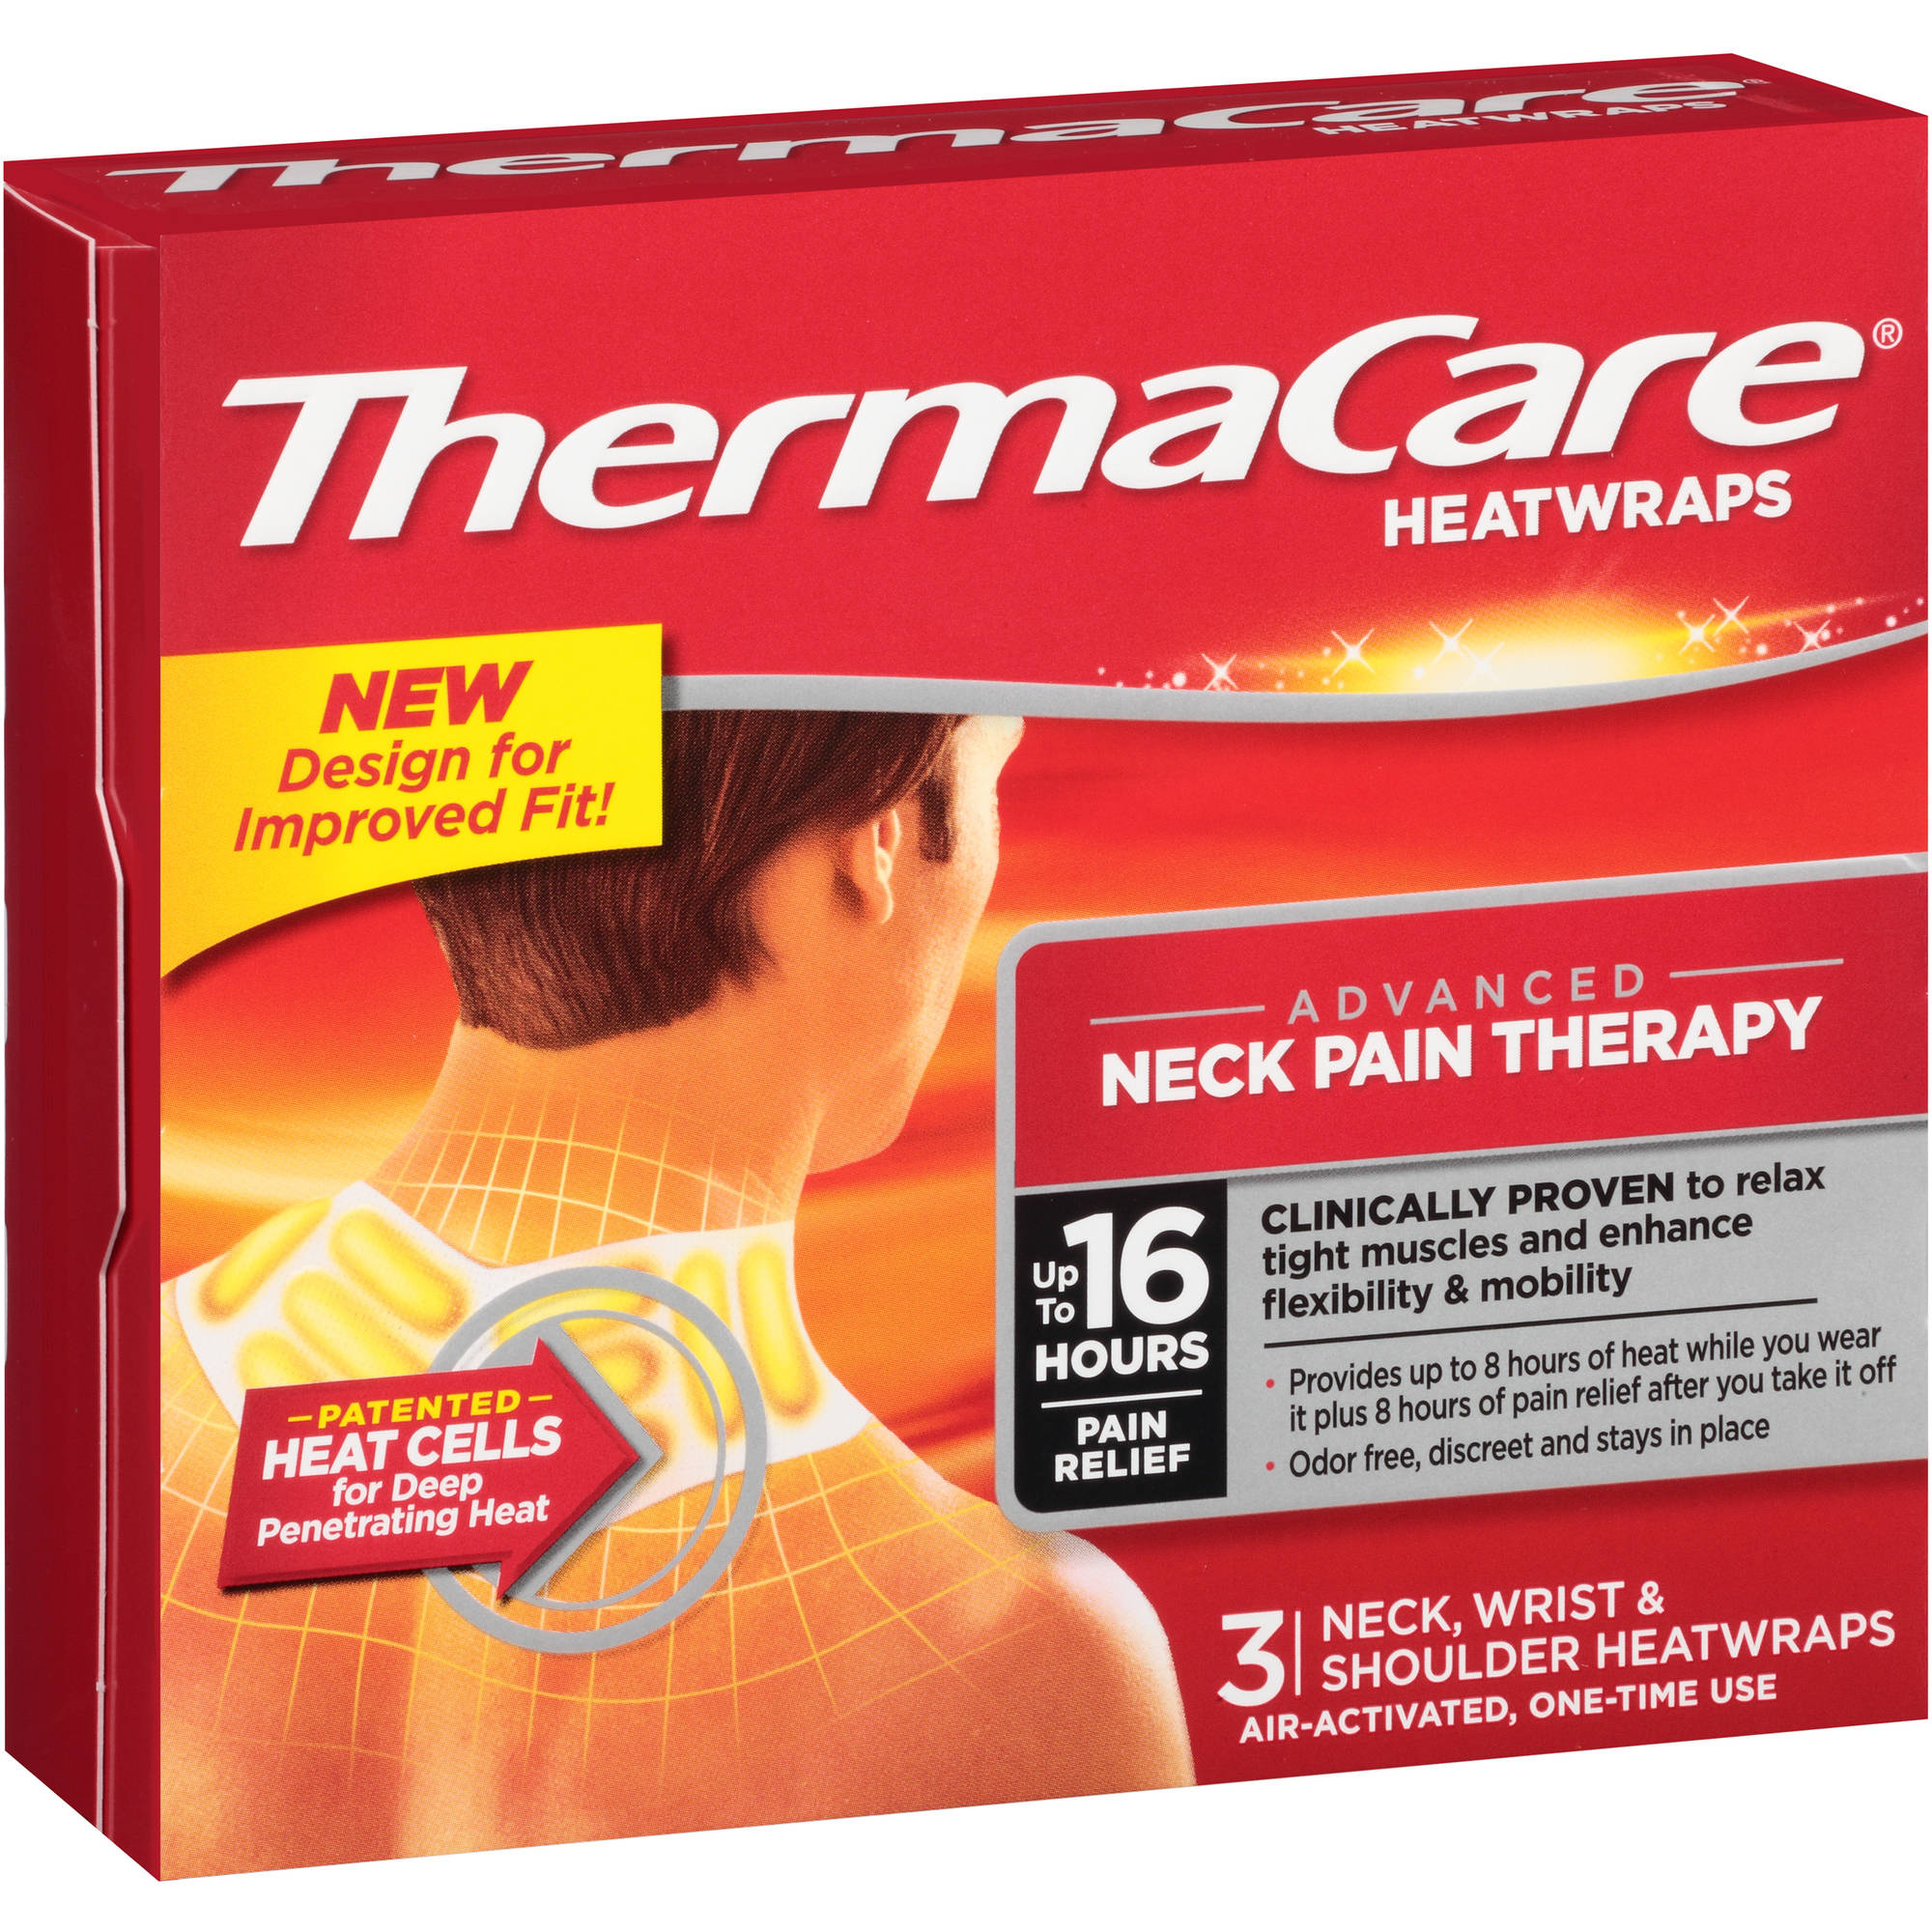 Thermacare Neck Wrist & Shoulder Pain Therapy Heatwraps 3 Ct